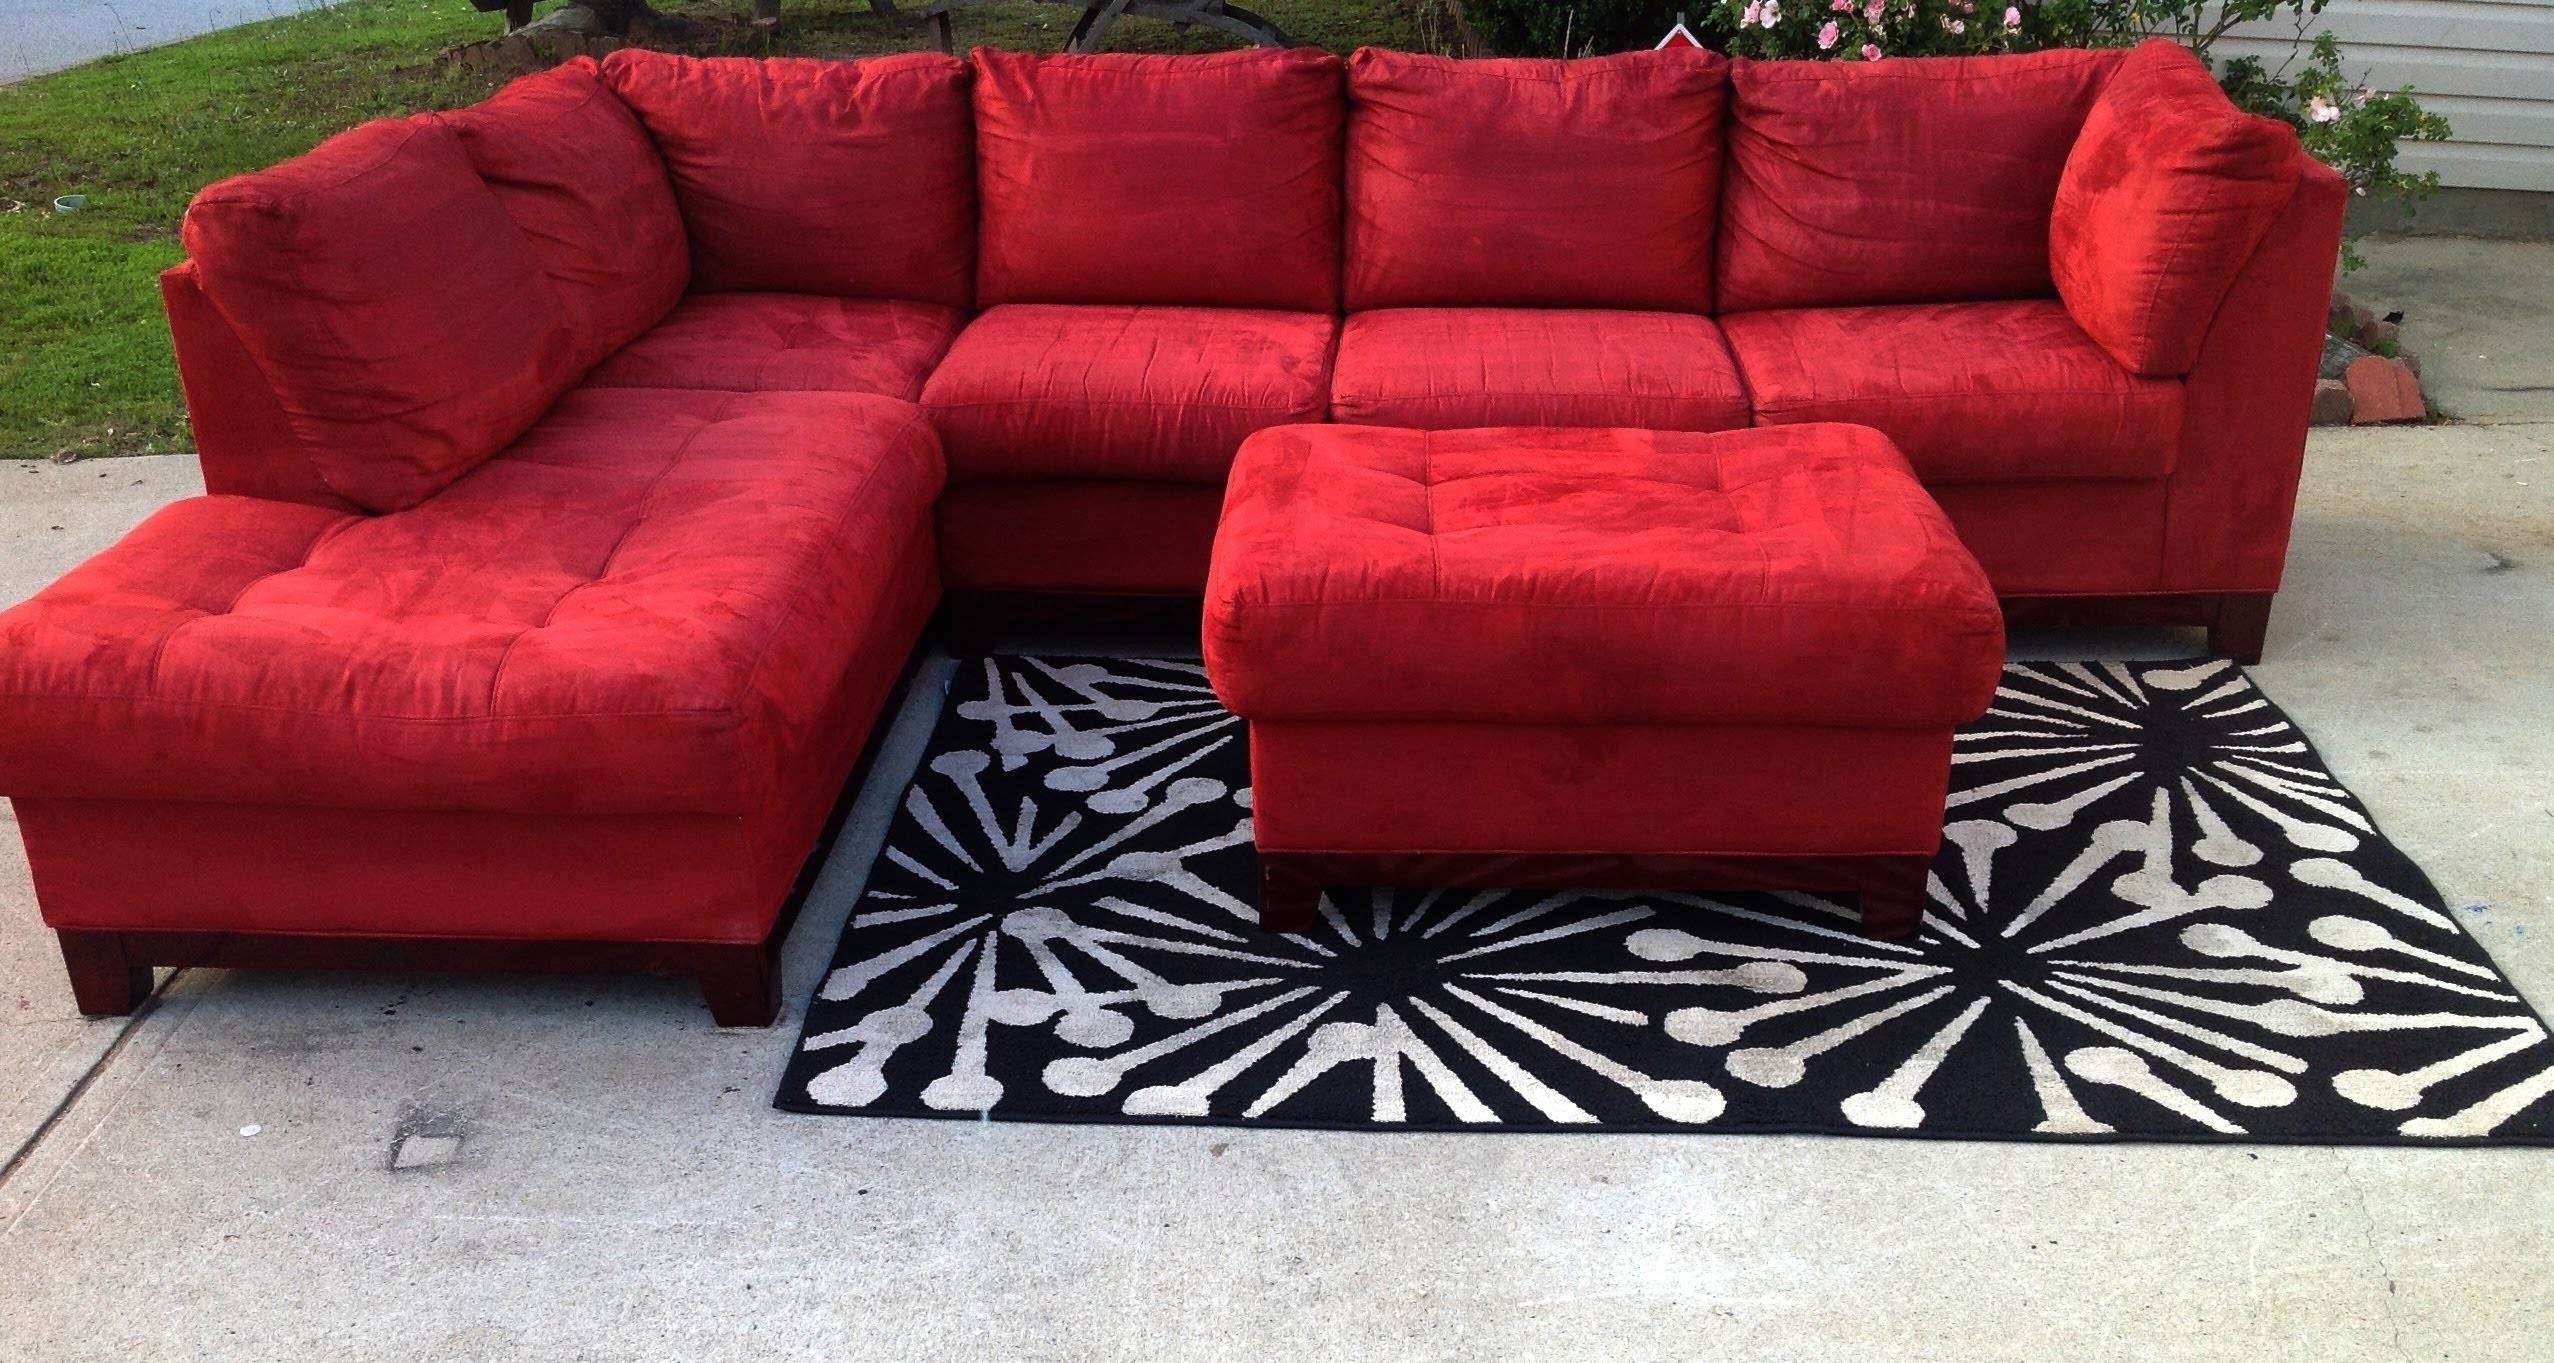 Red Cindy Crawford Stlye Sectional 475 - Youtube regarding Cindy Crawford Home Sectional Sofa (Image 28 of 30)